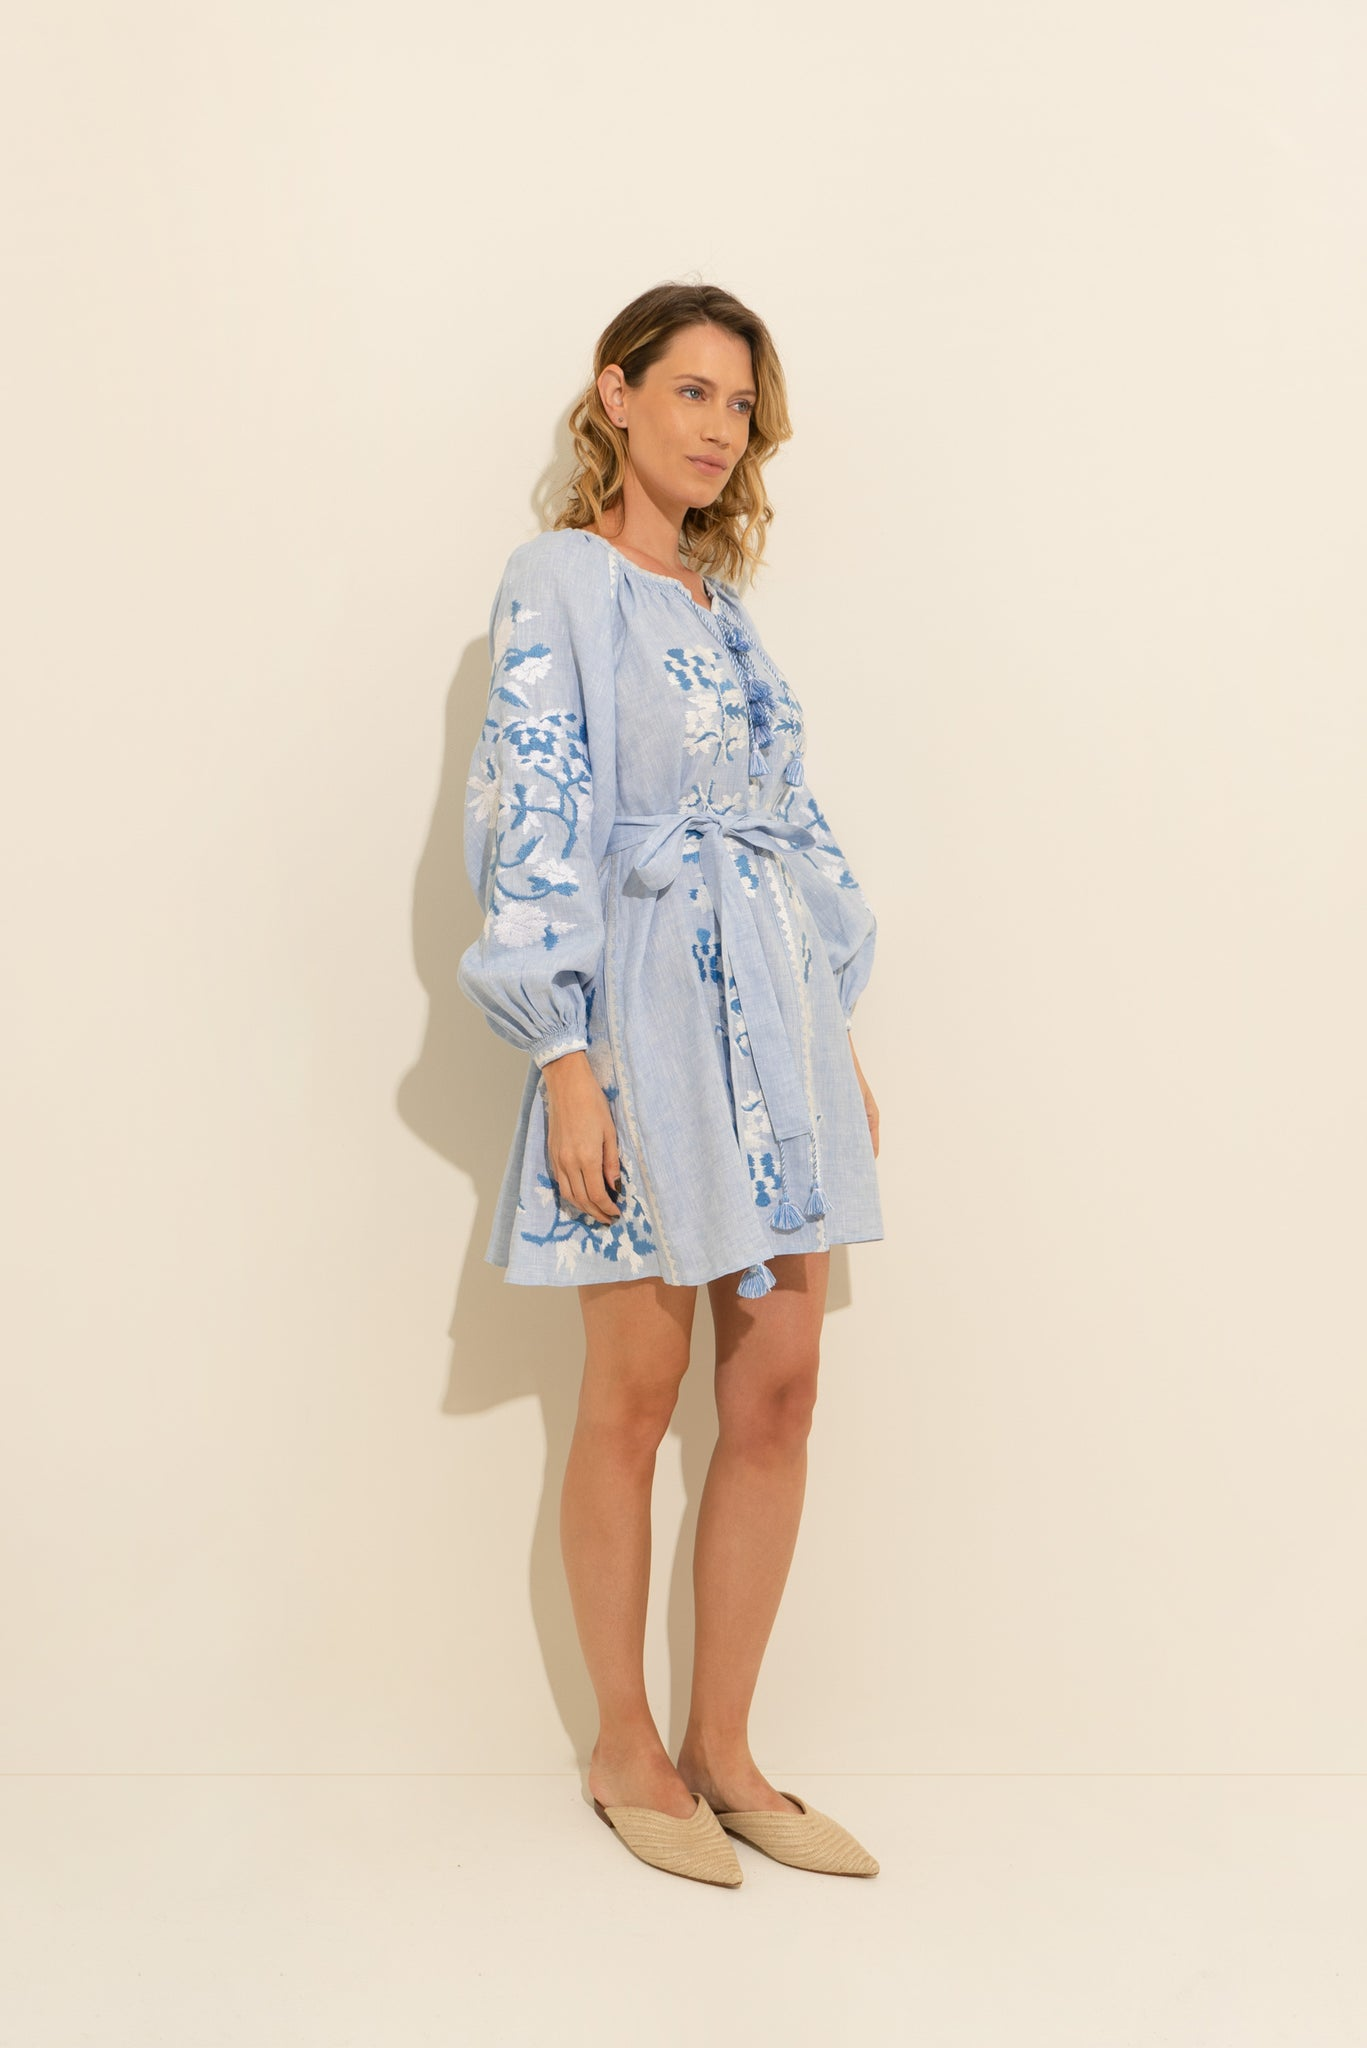 Roberta Mini Dress in Sky Blue